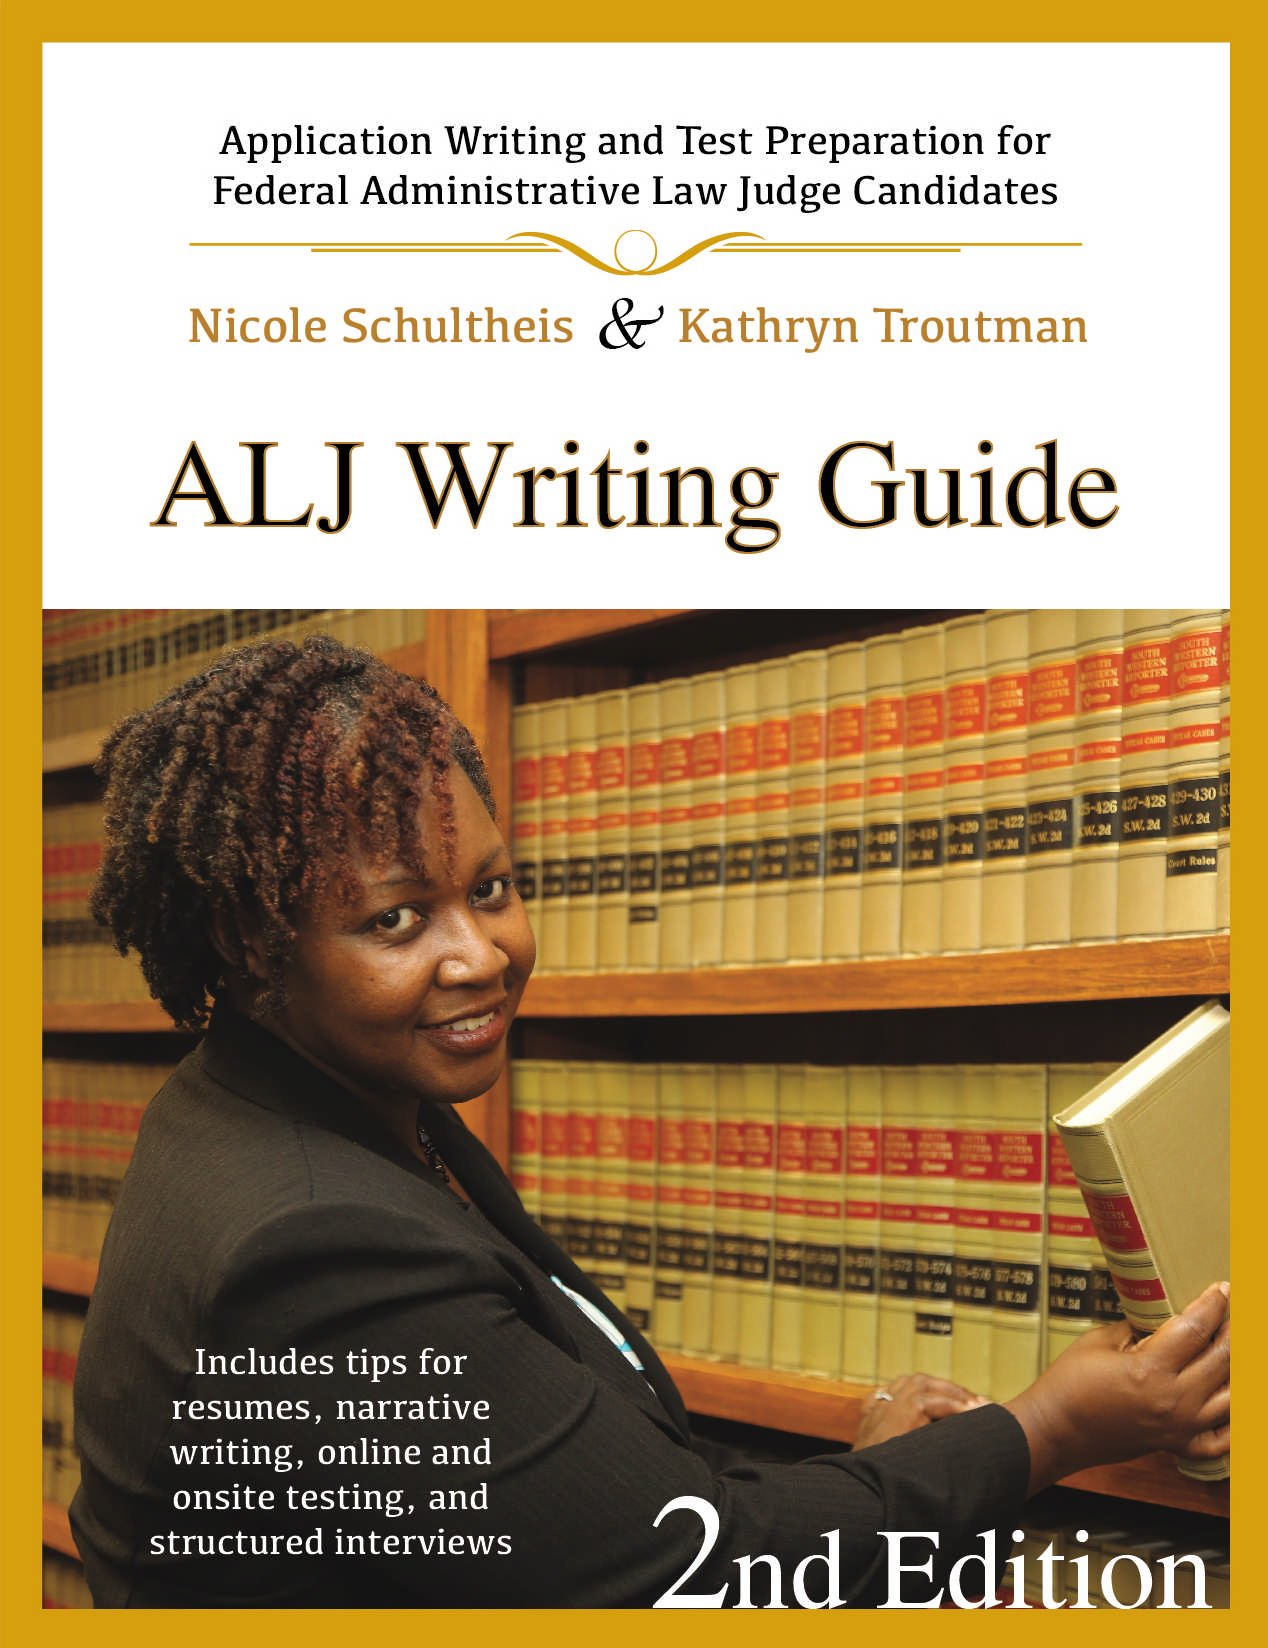 alj writing guide application writing and test preparation for